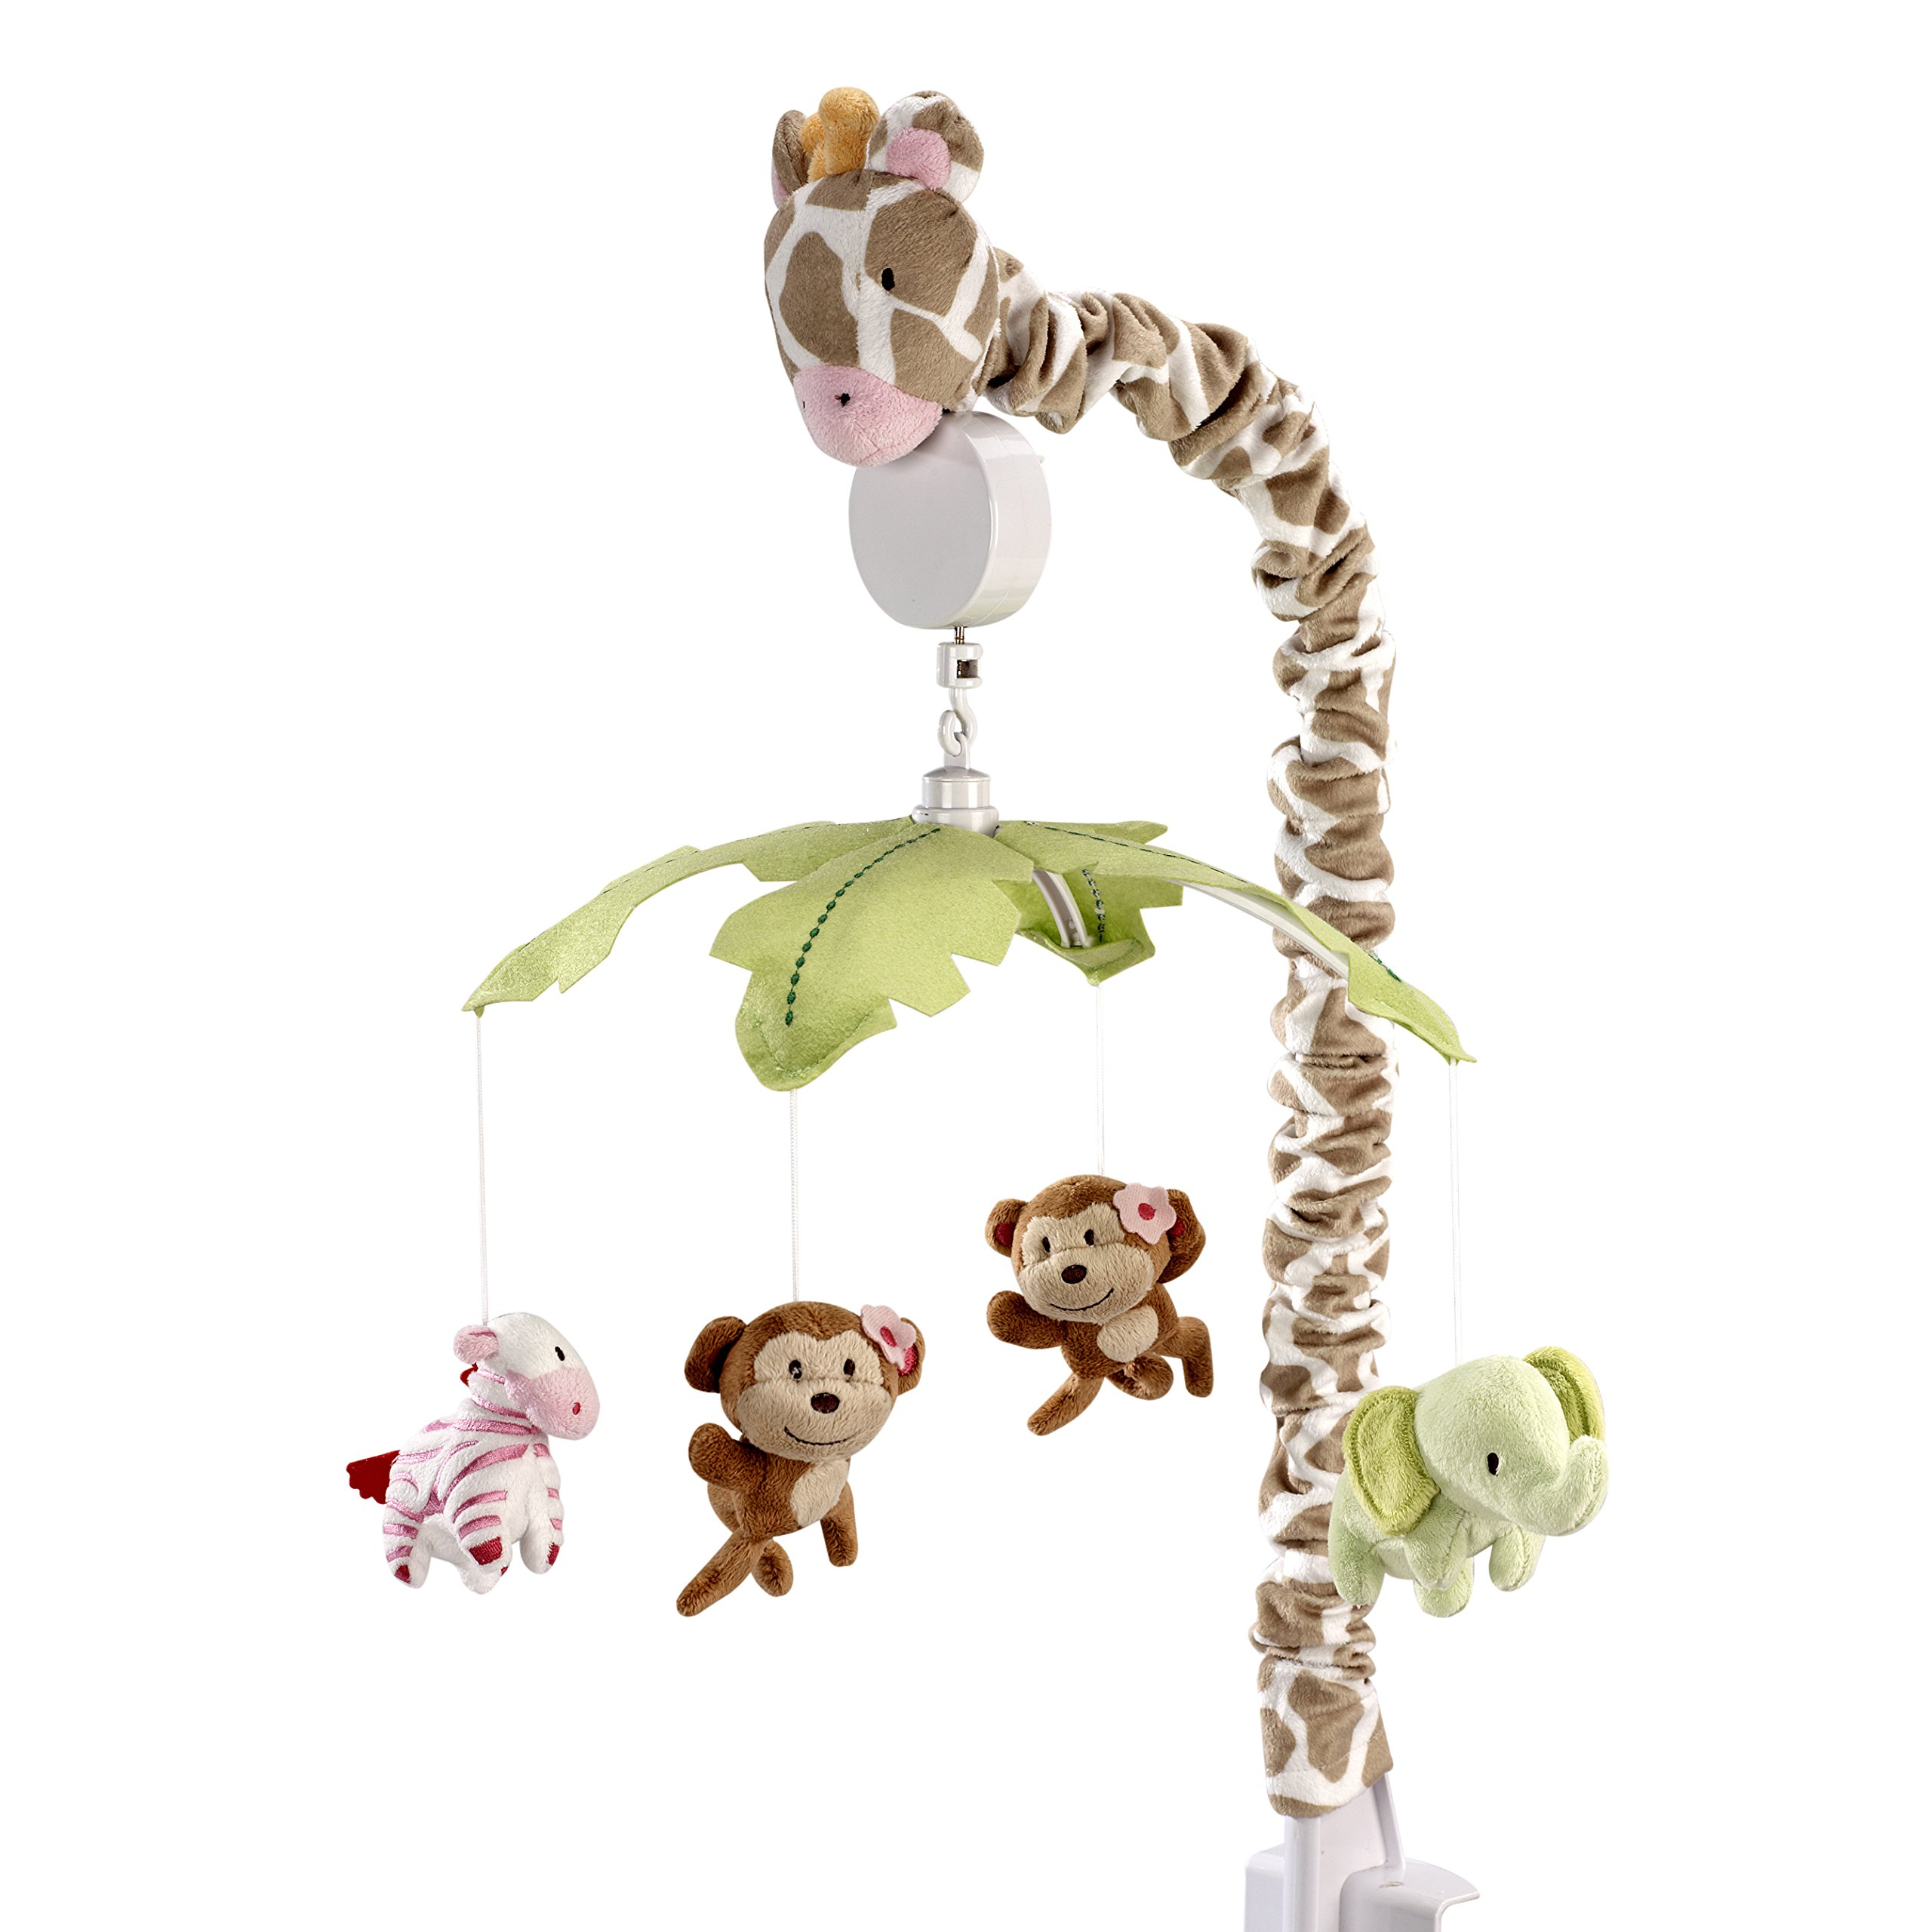 Carter's Jungle Collection Musical Mobile